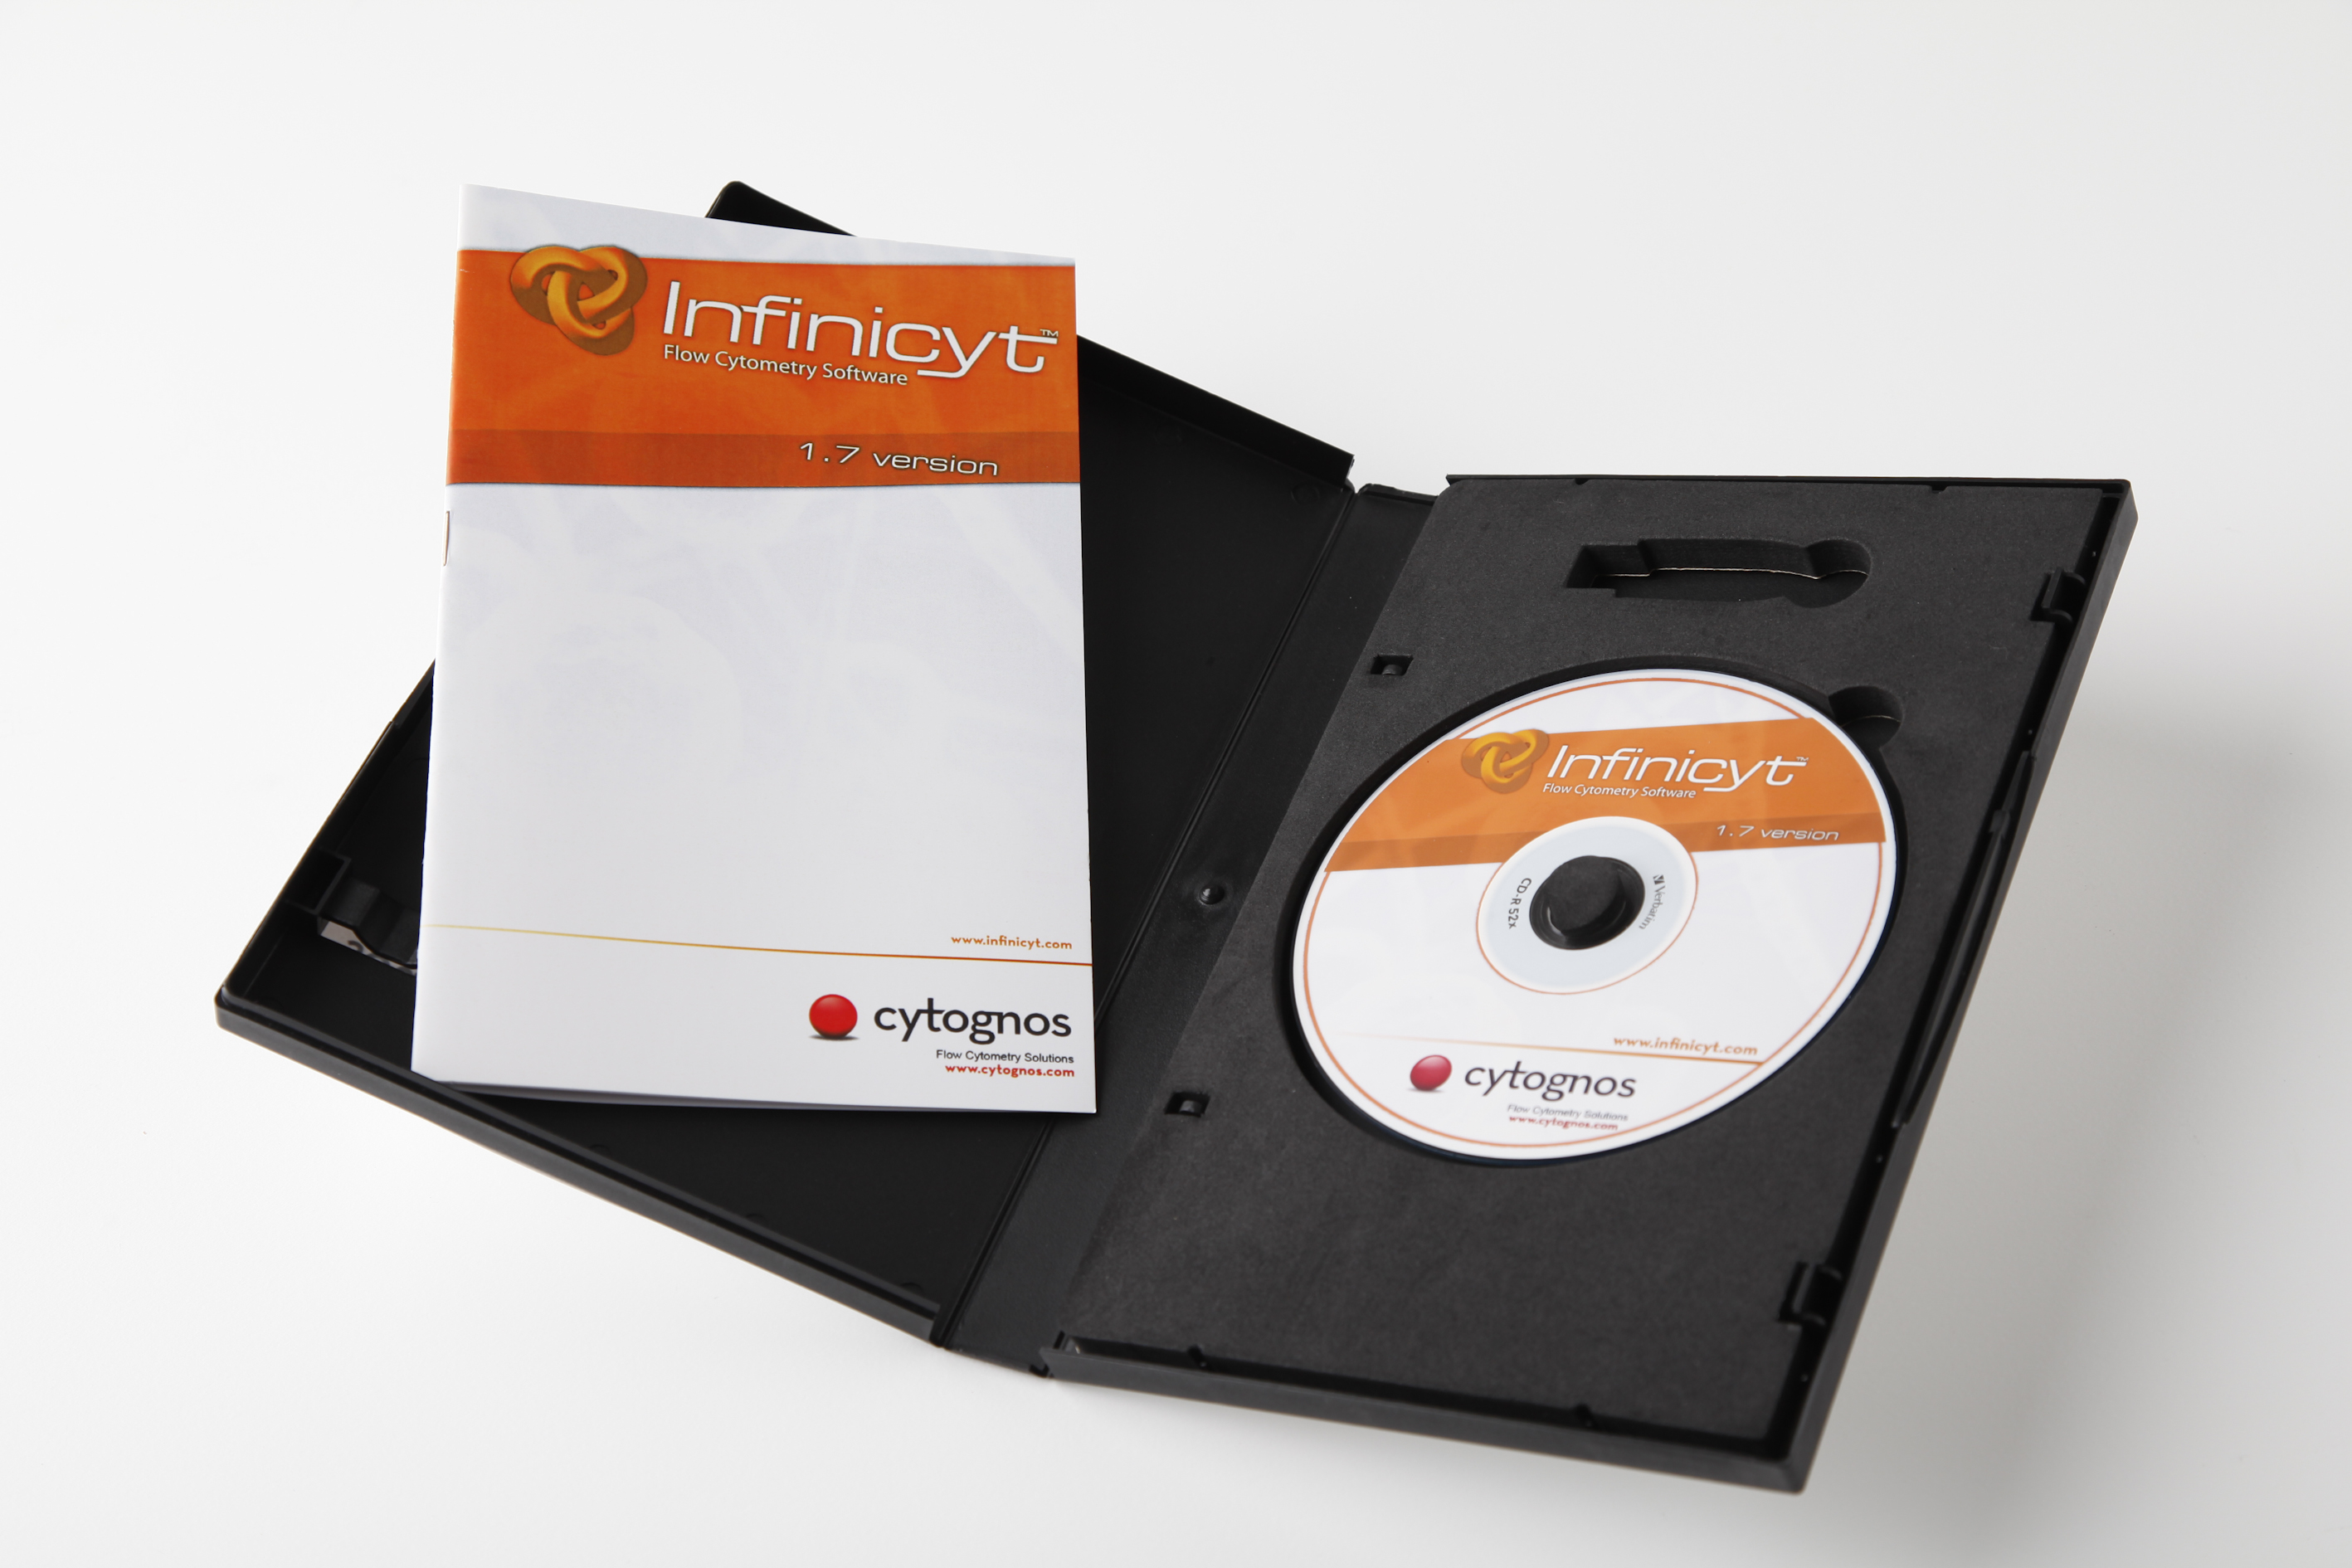 An image of the Infinicyt™ Flow Cytometry Software.